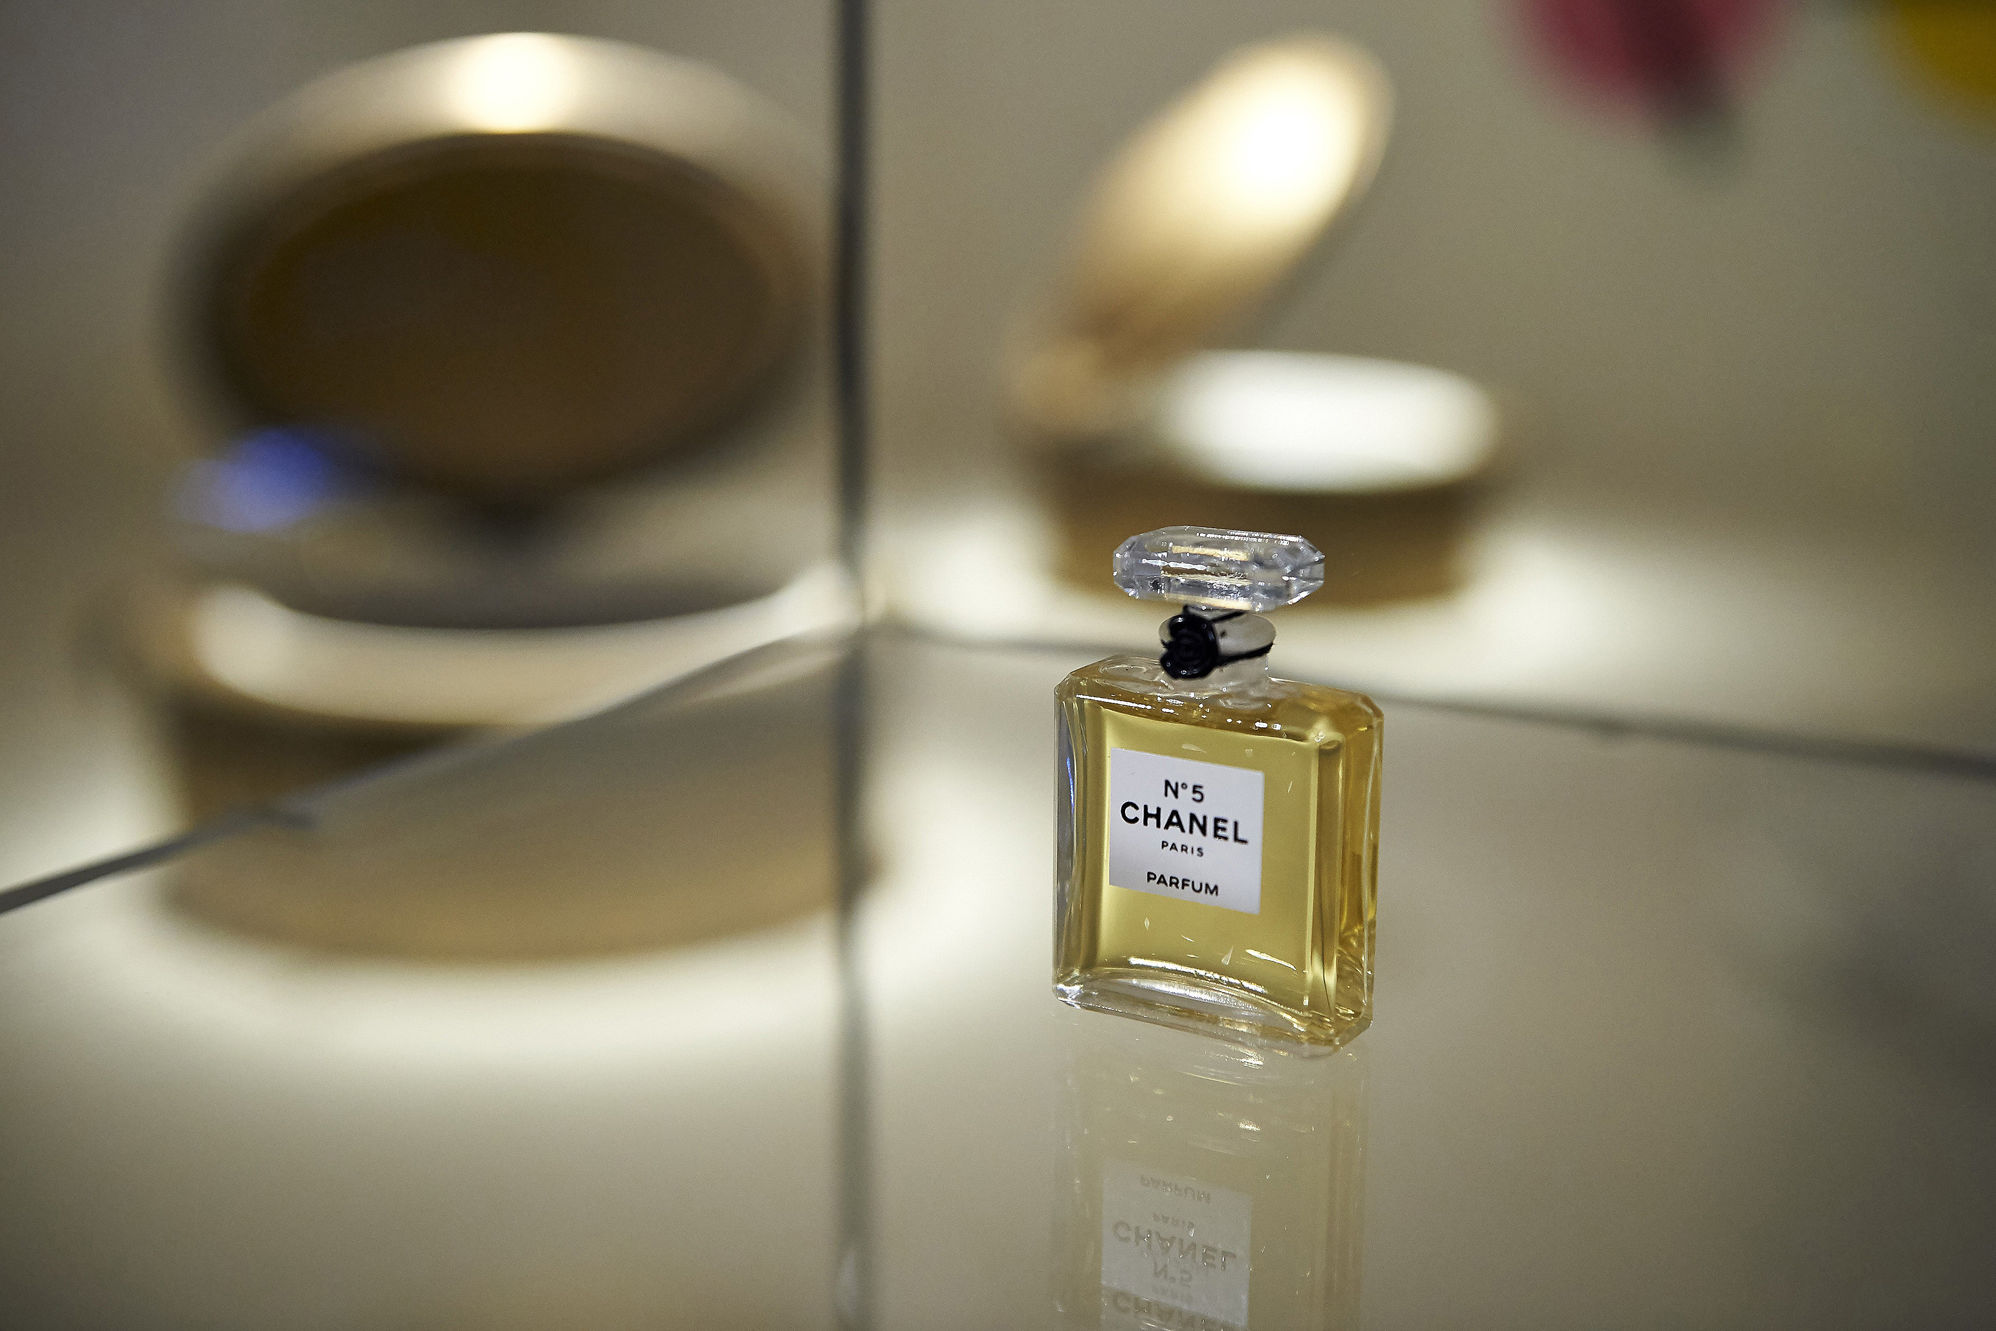 It Takes an Insane Amount of Flowers to Make 1 Ounce of Chanel's Most Famous Perfume